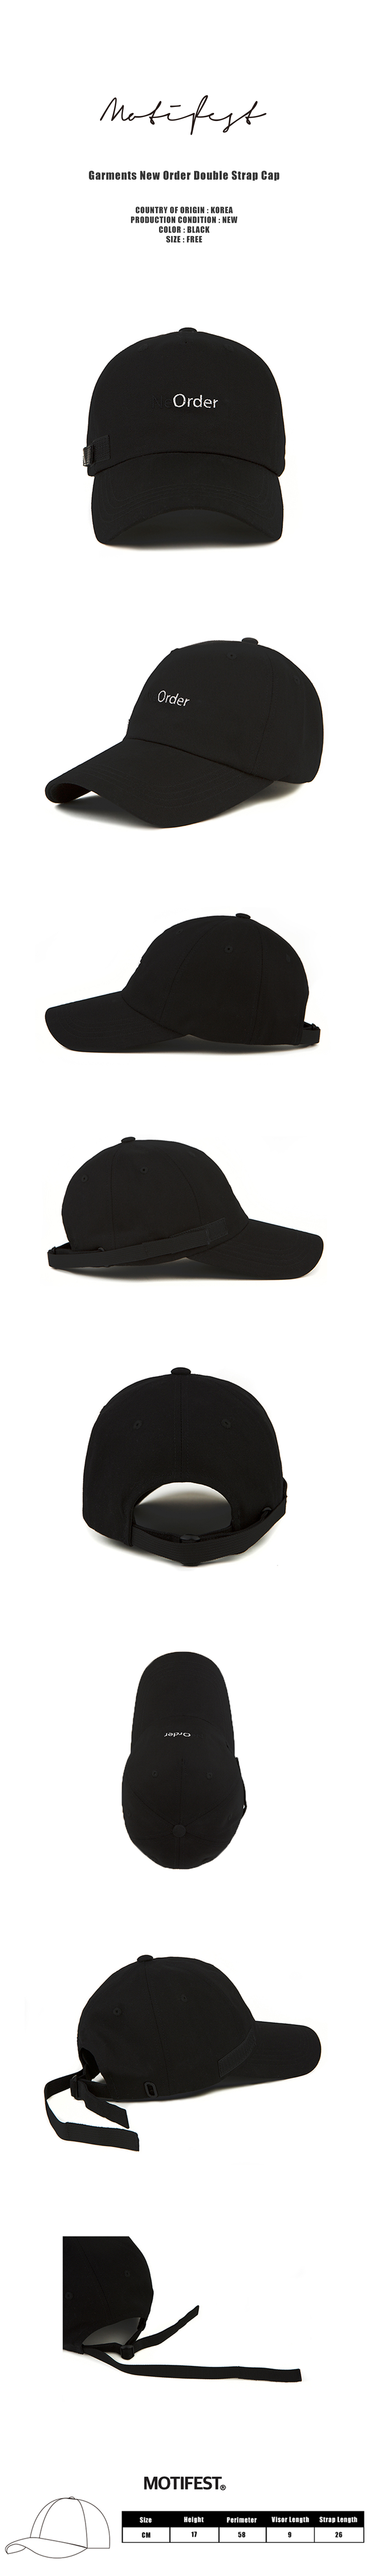 Garments New Order Double Strap Cap Black-1000.jpg